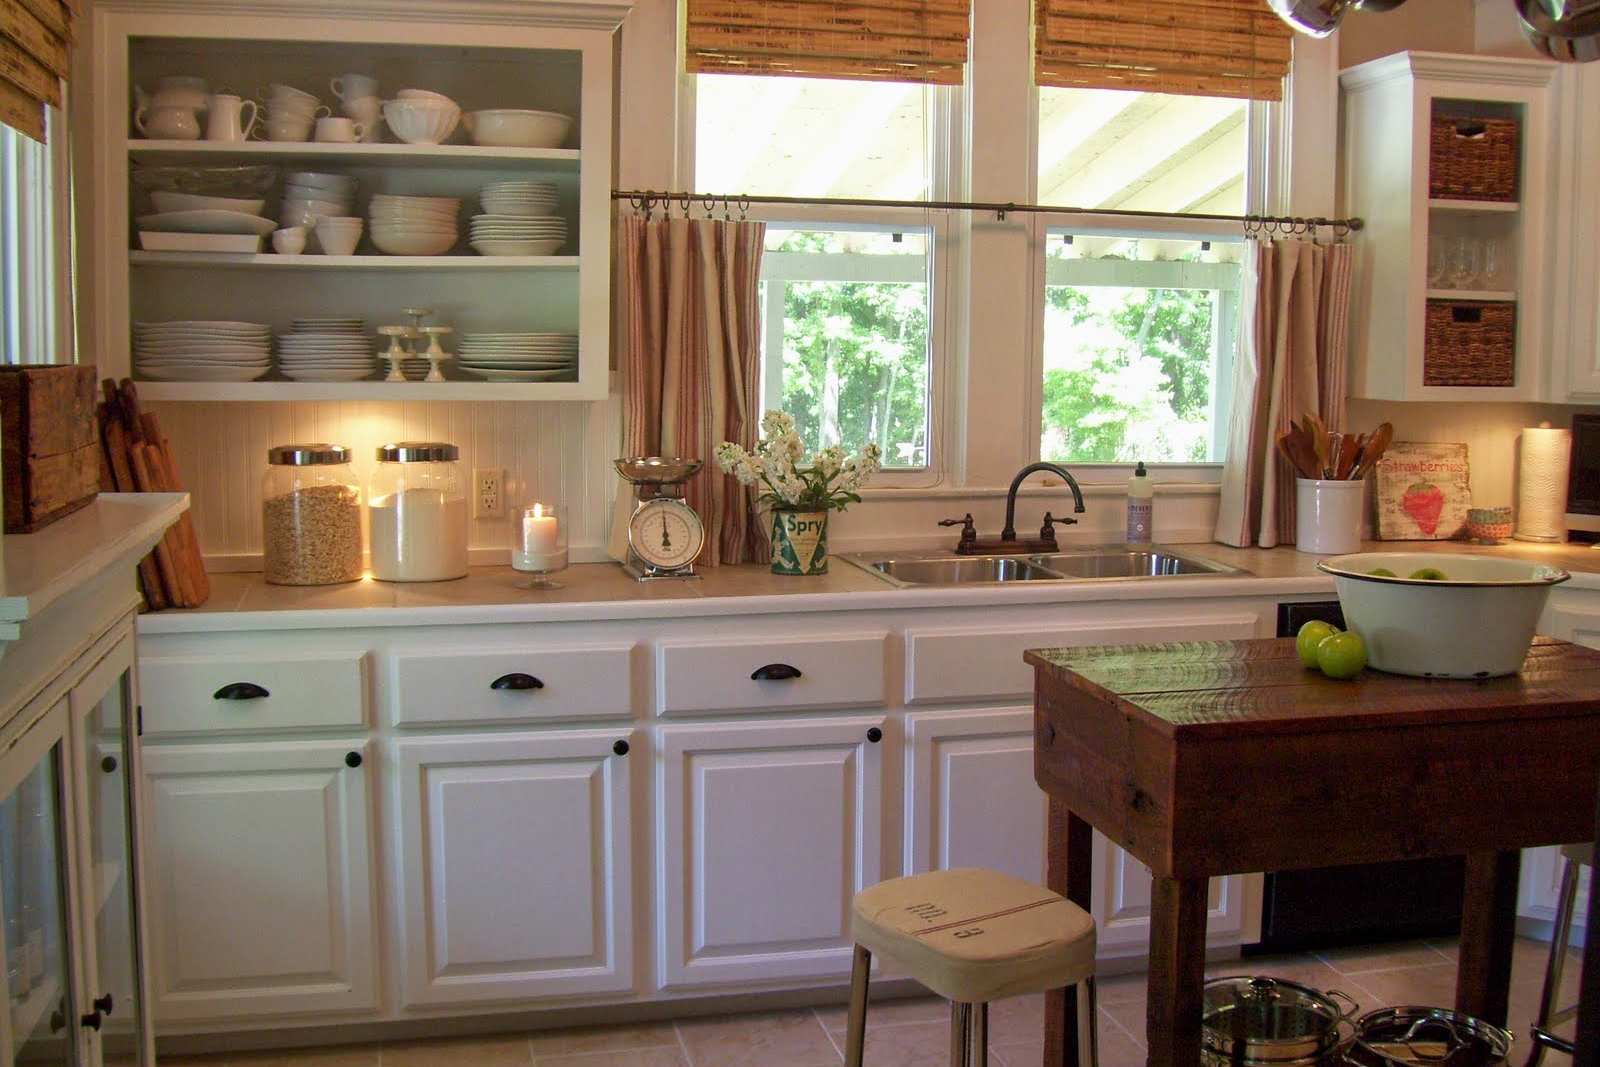 Kitchen Remodeling Ideas On A Budget Remodeling A Kitchen  Do It Yourself Kitchen Remodel